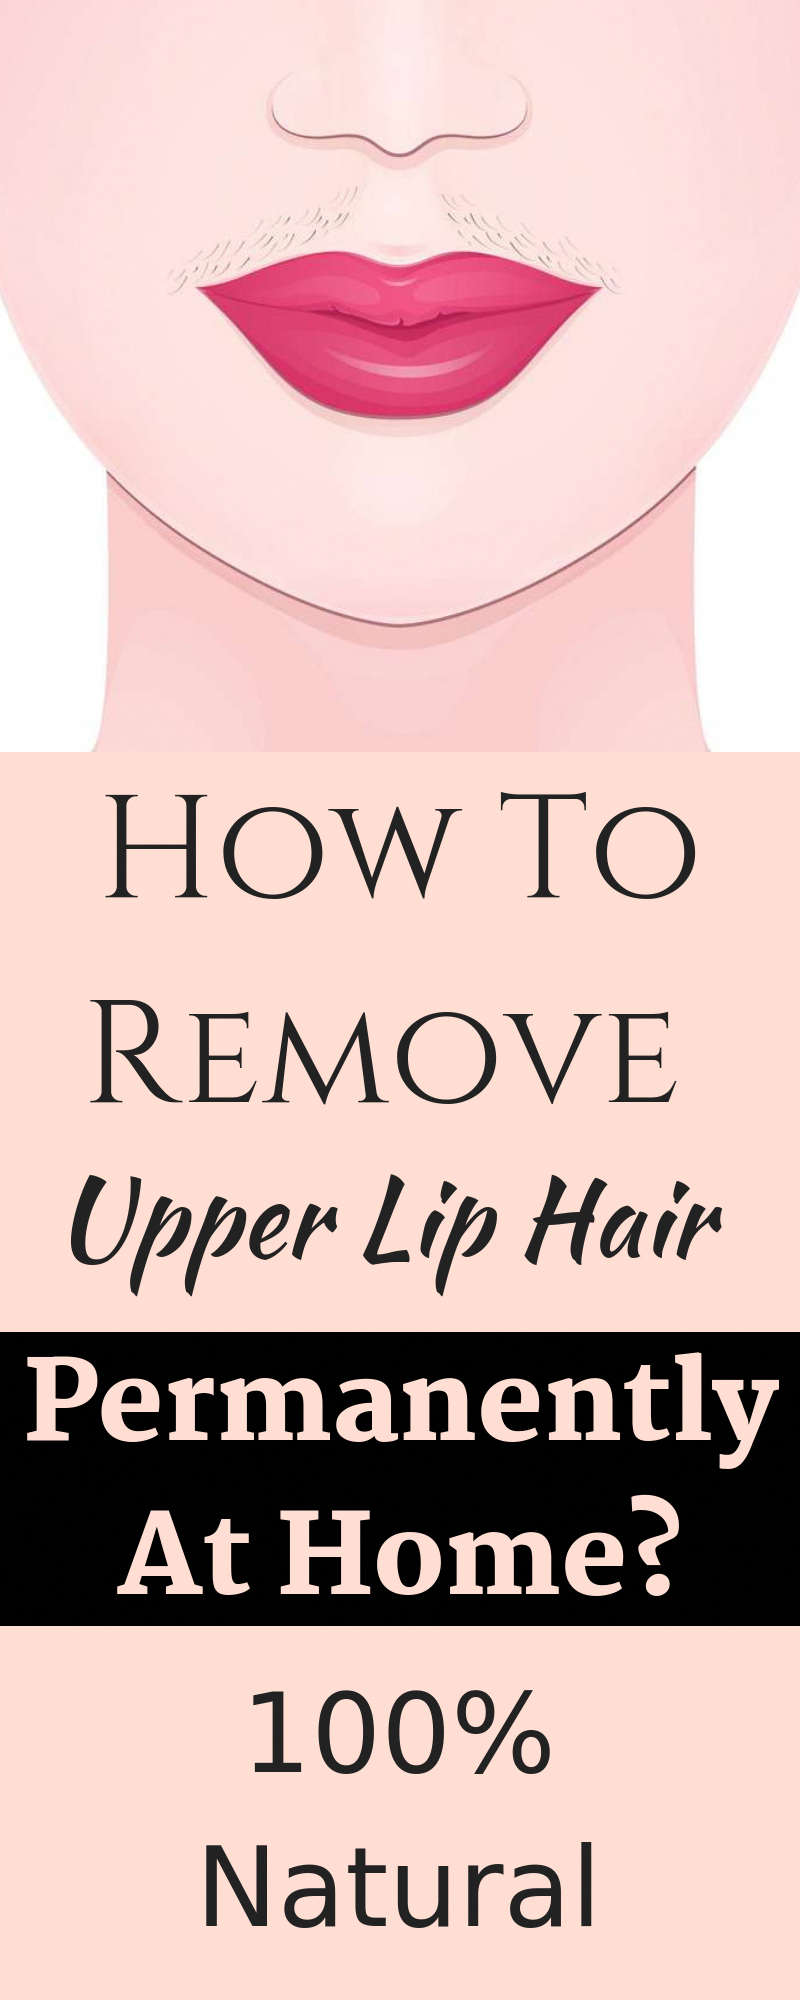 How To Remove Upper Lip Hair Permanently At Home?